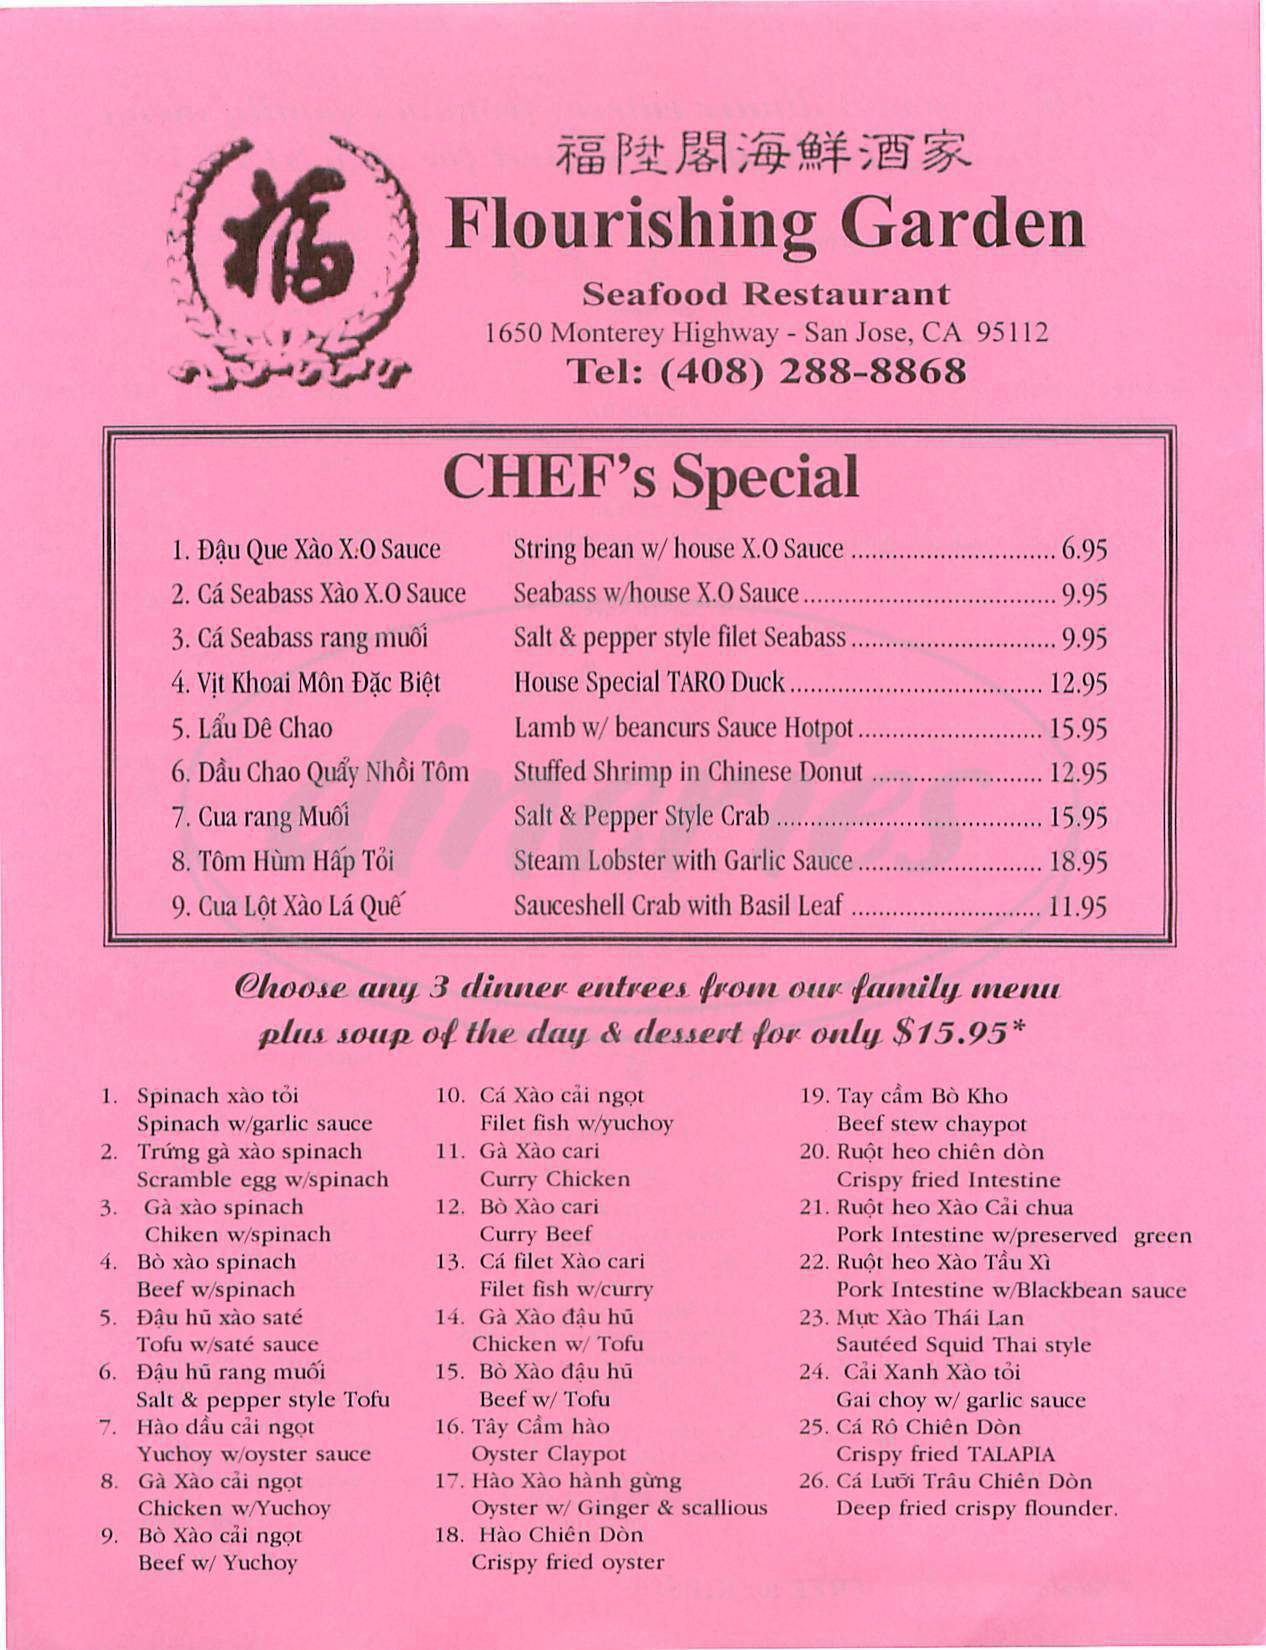 menu for Flourishing Garden Restaurant